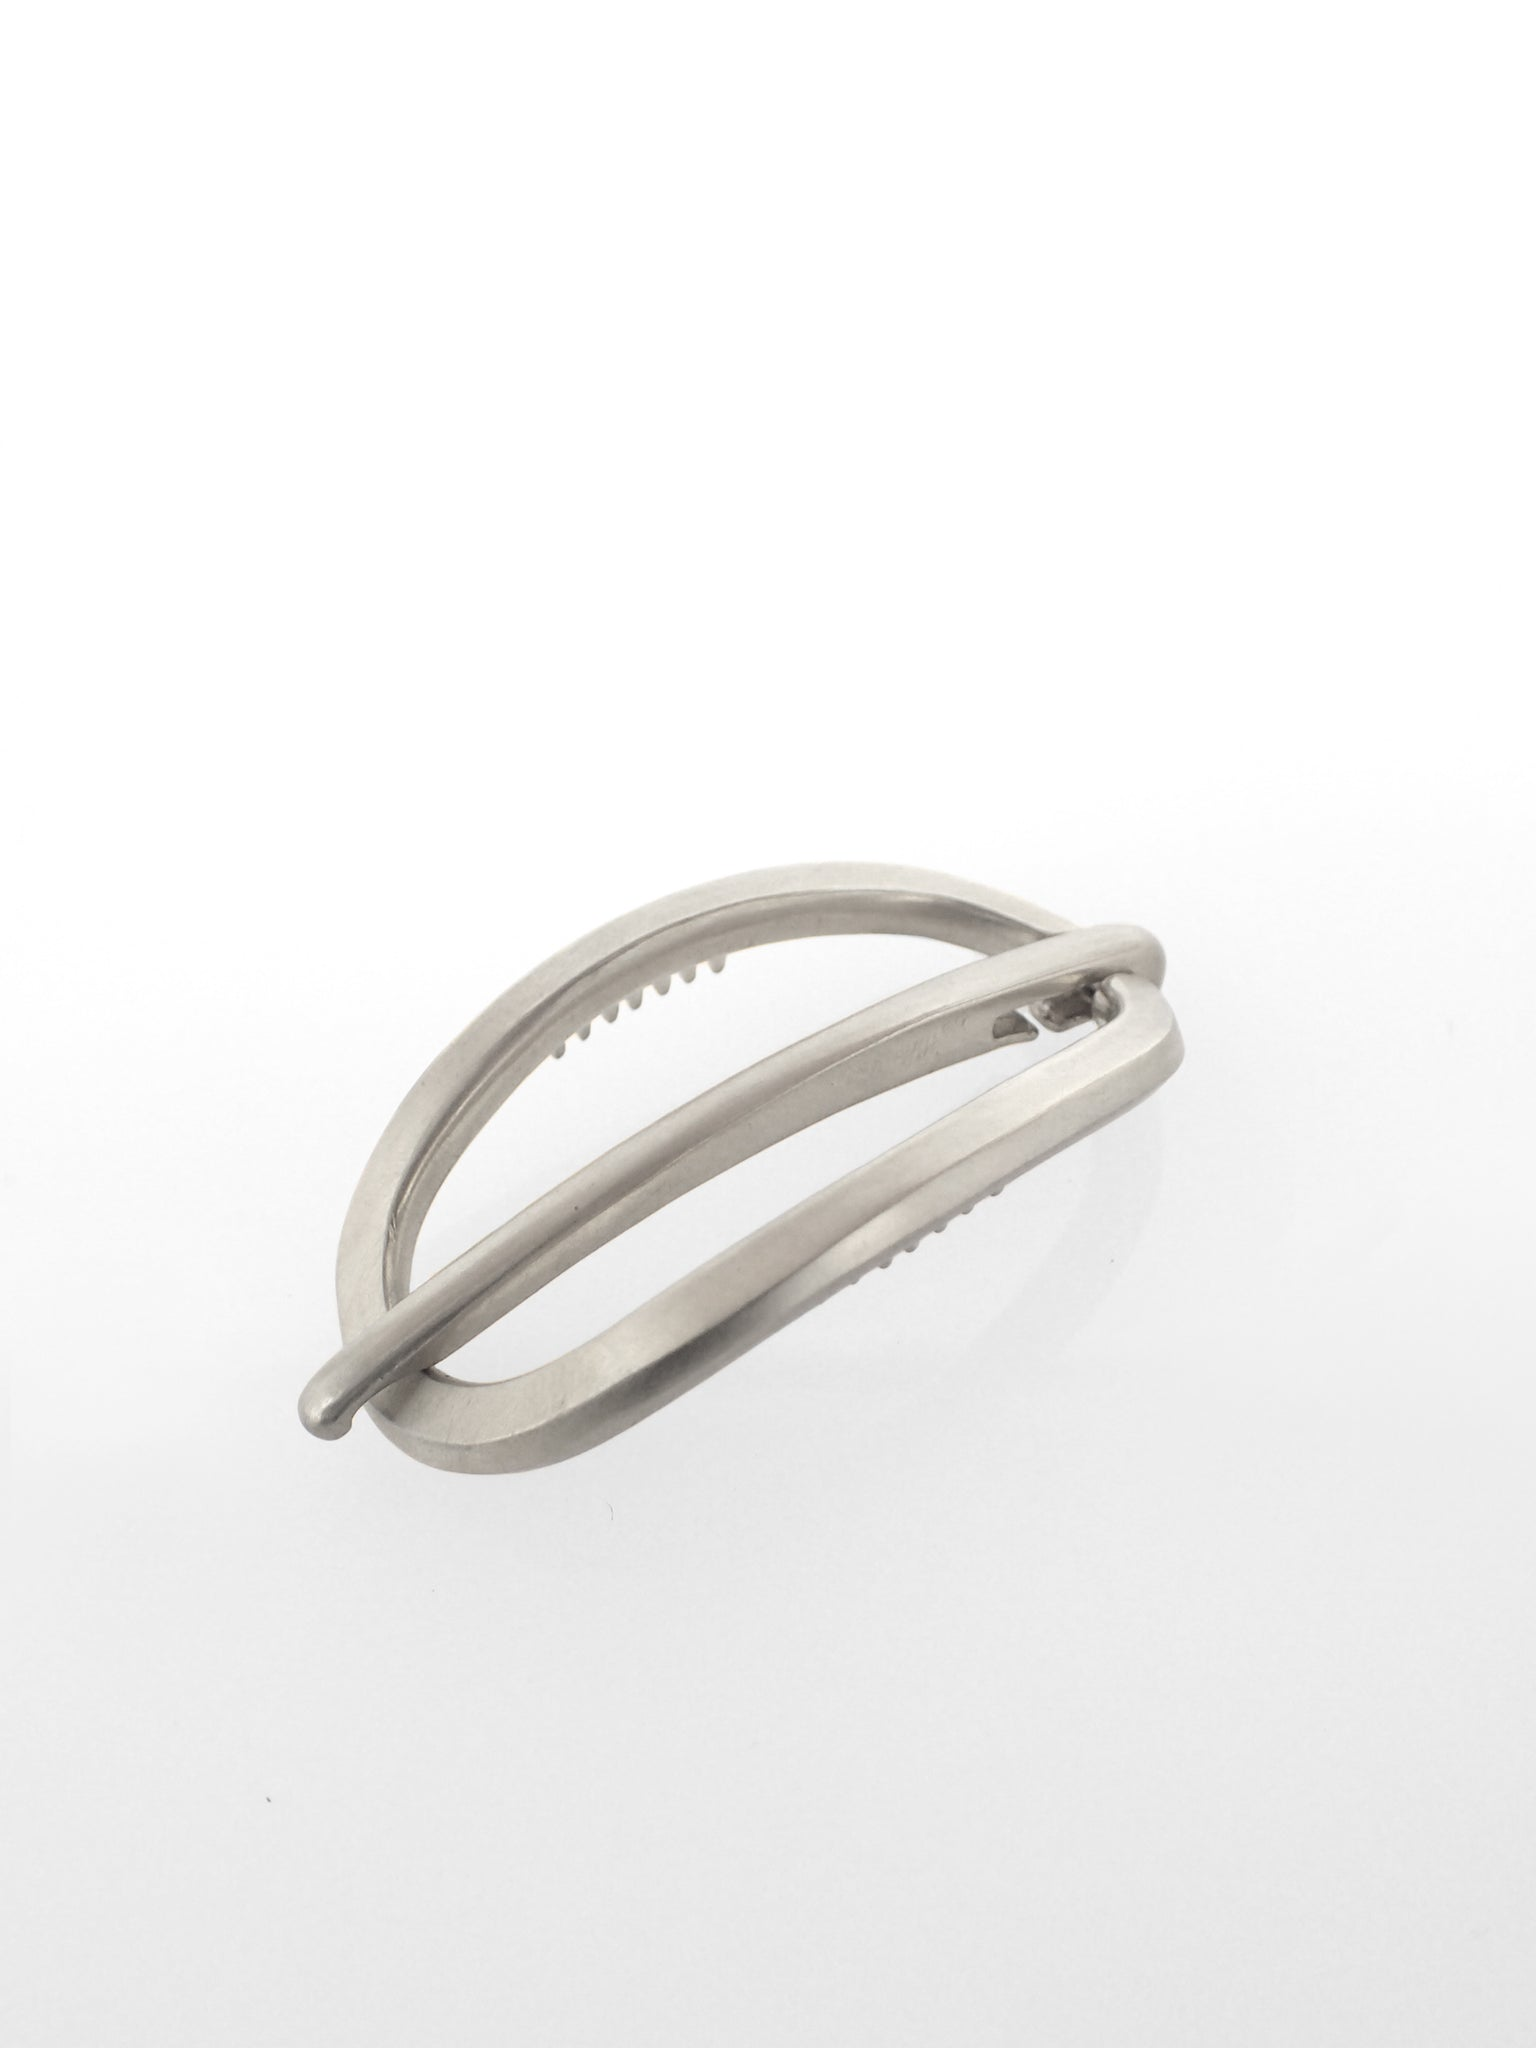 Rosen Latch Barrette / White Brass